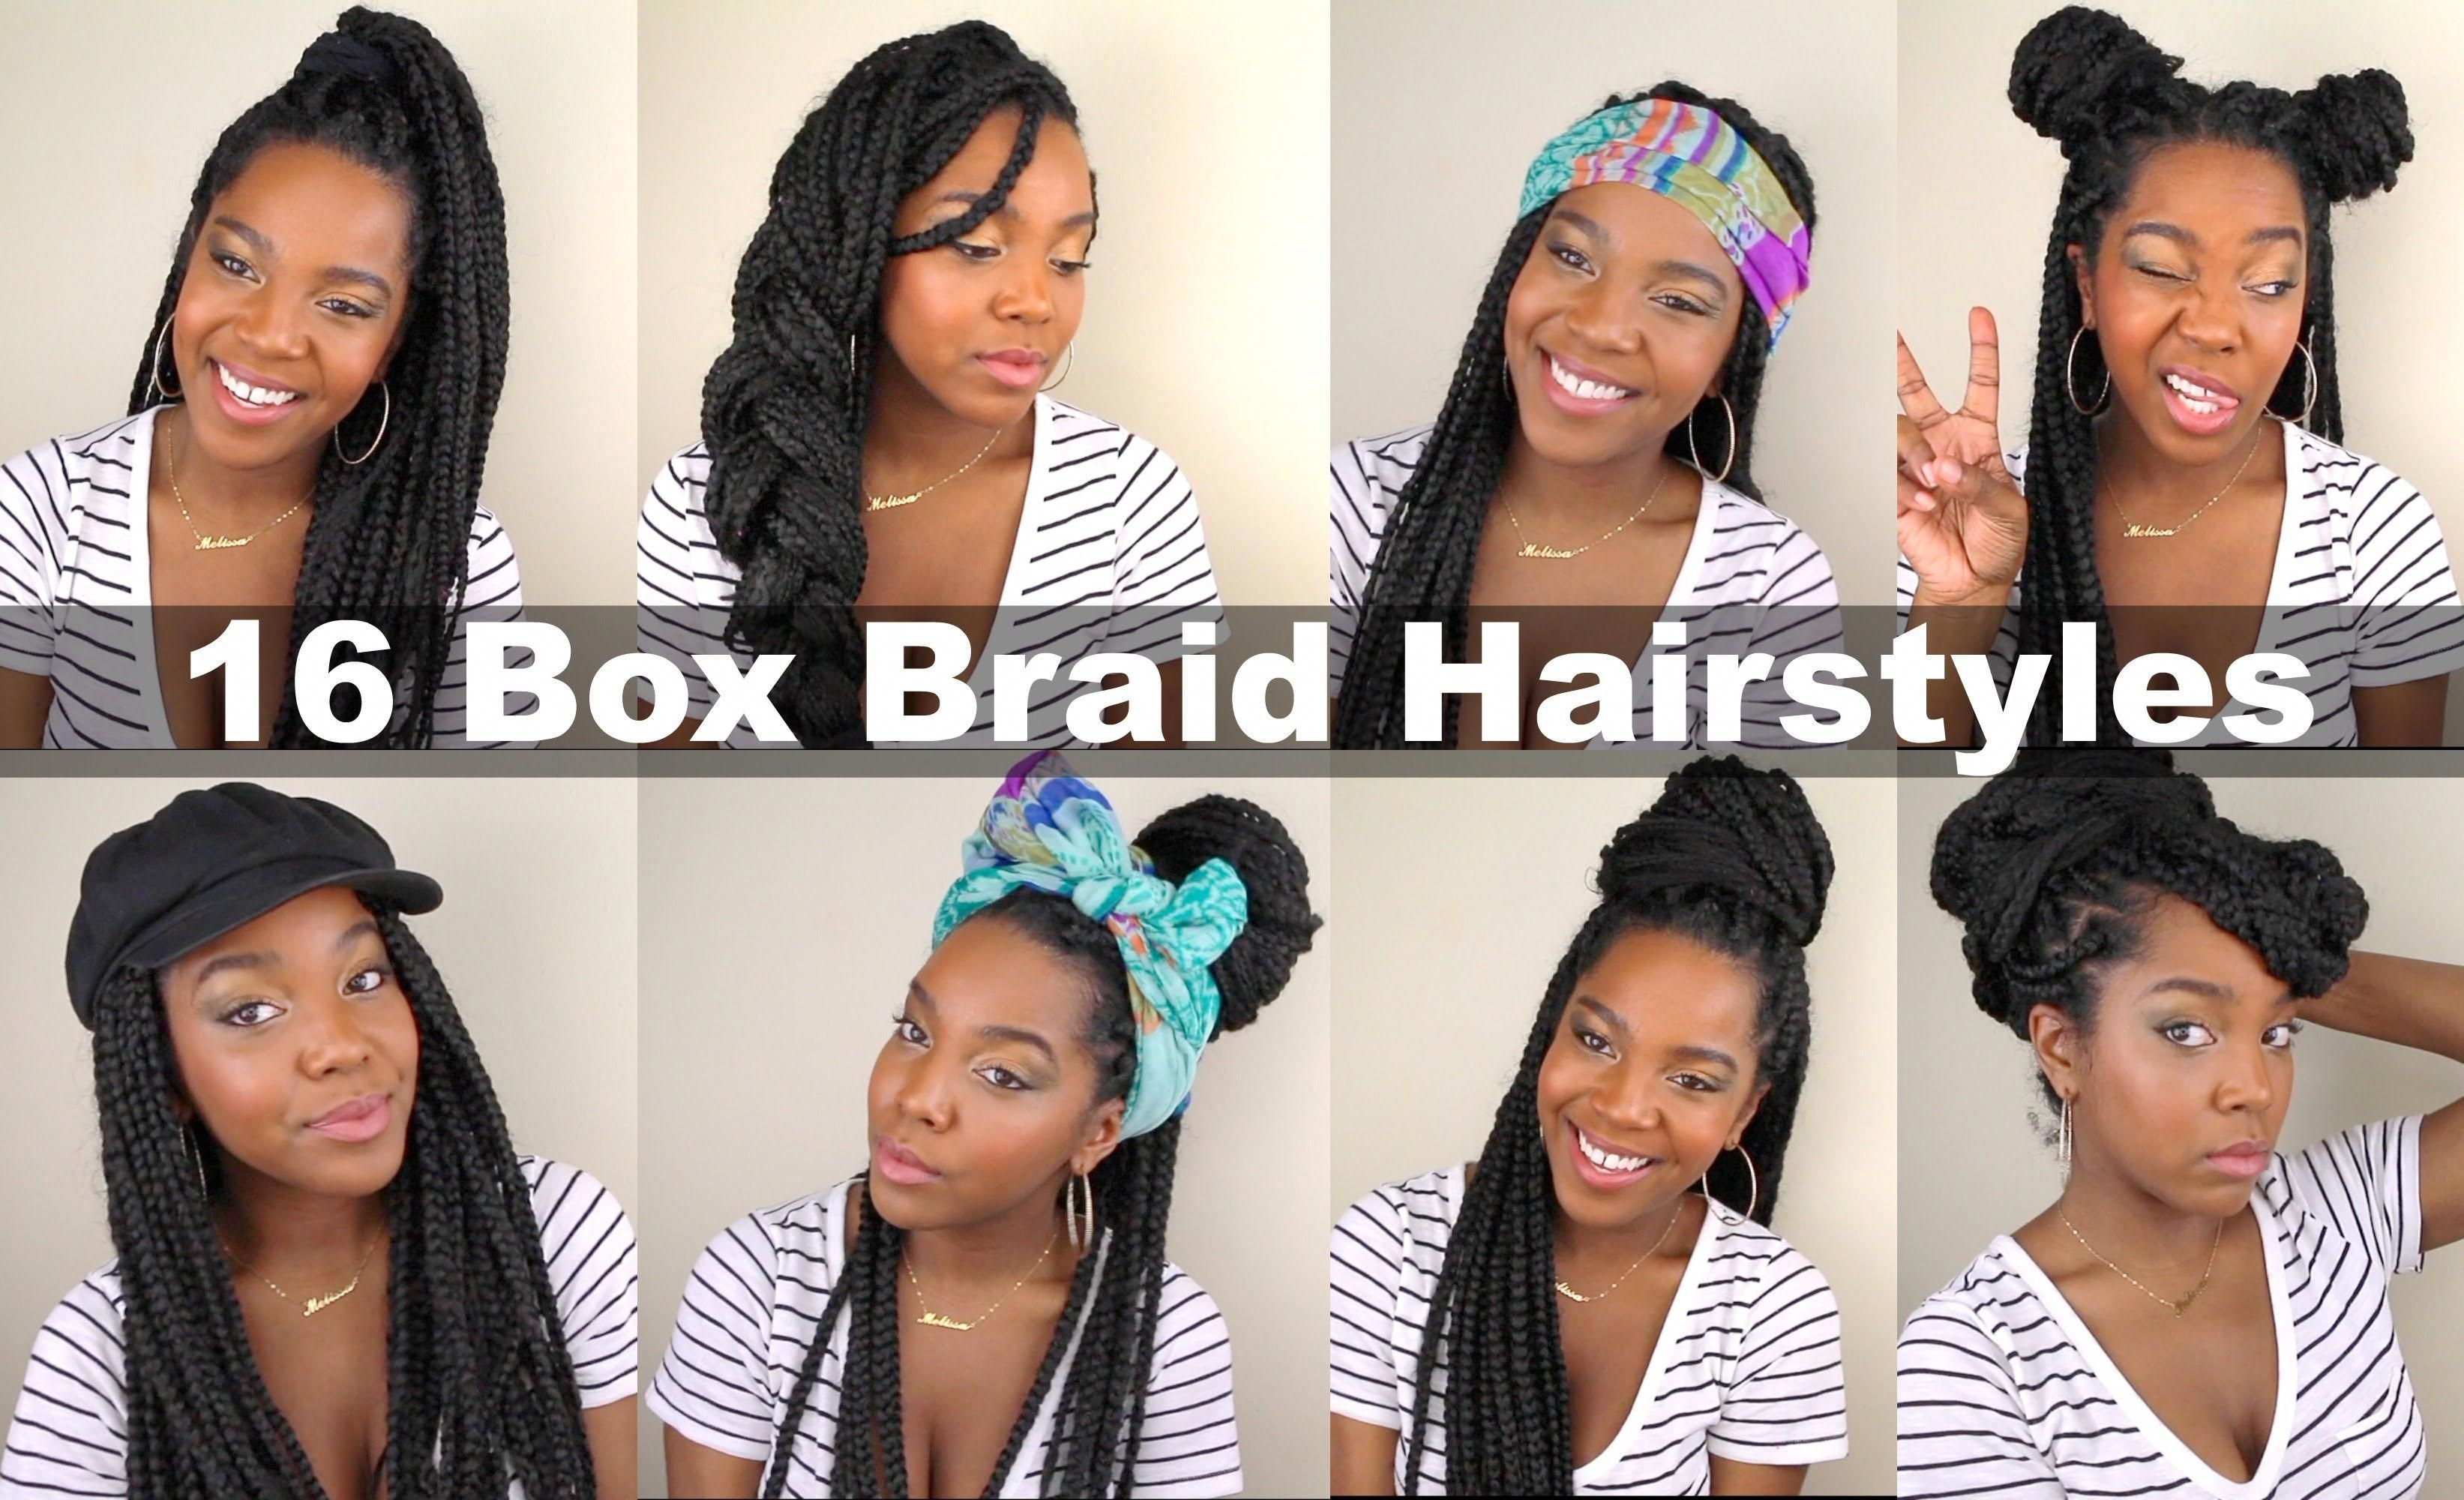 This Quick Easy Hairstyles Truly Are Beautiful Quickeasyhairstyles Box Braids Hairstyles Quick Braided Hairstyles Hair Styles